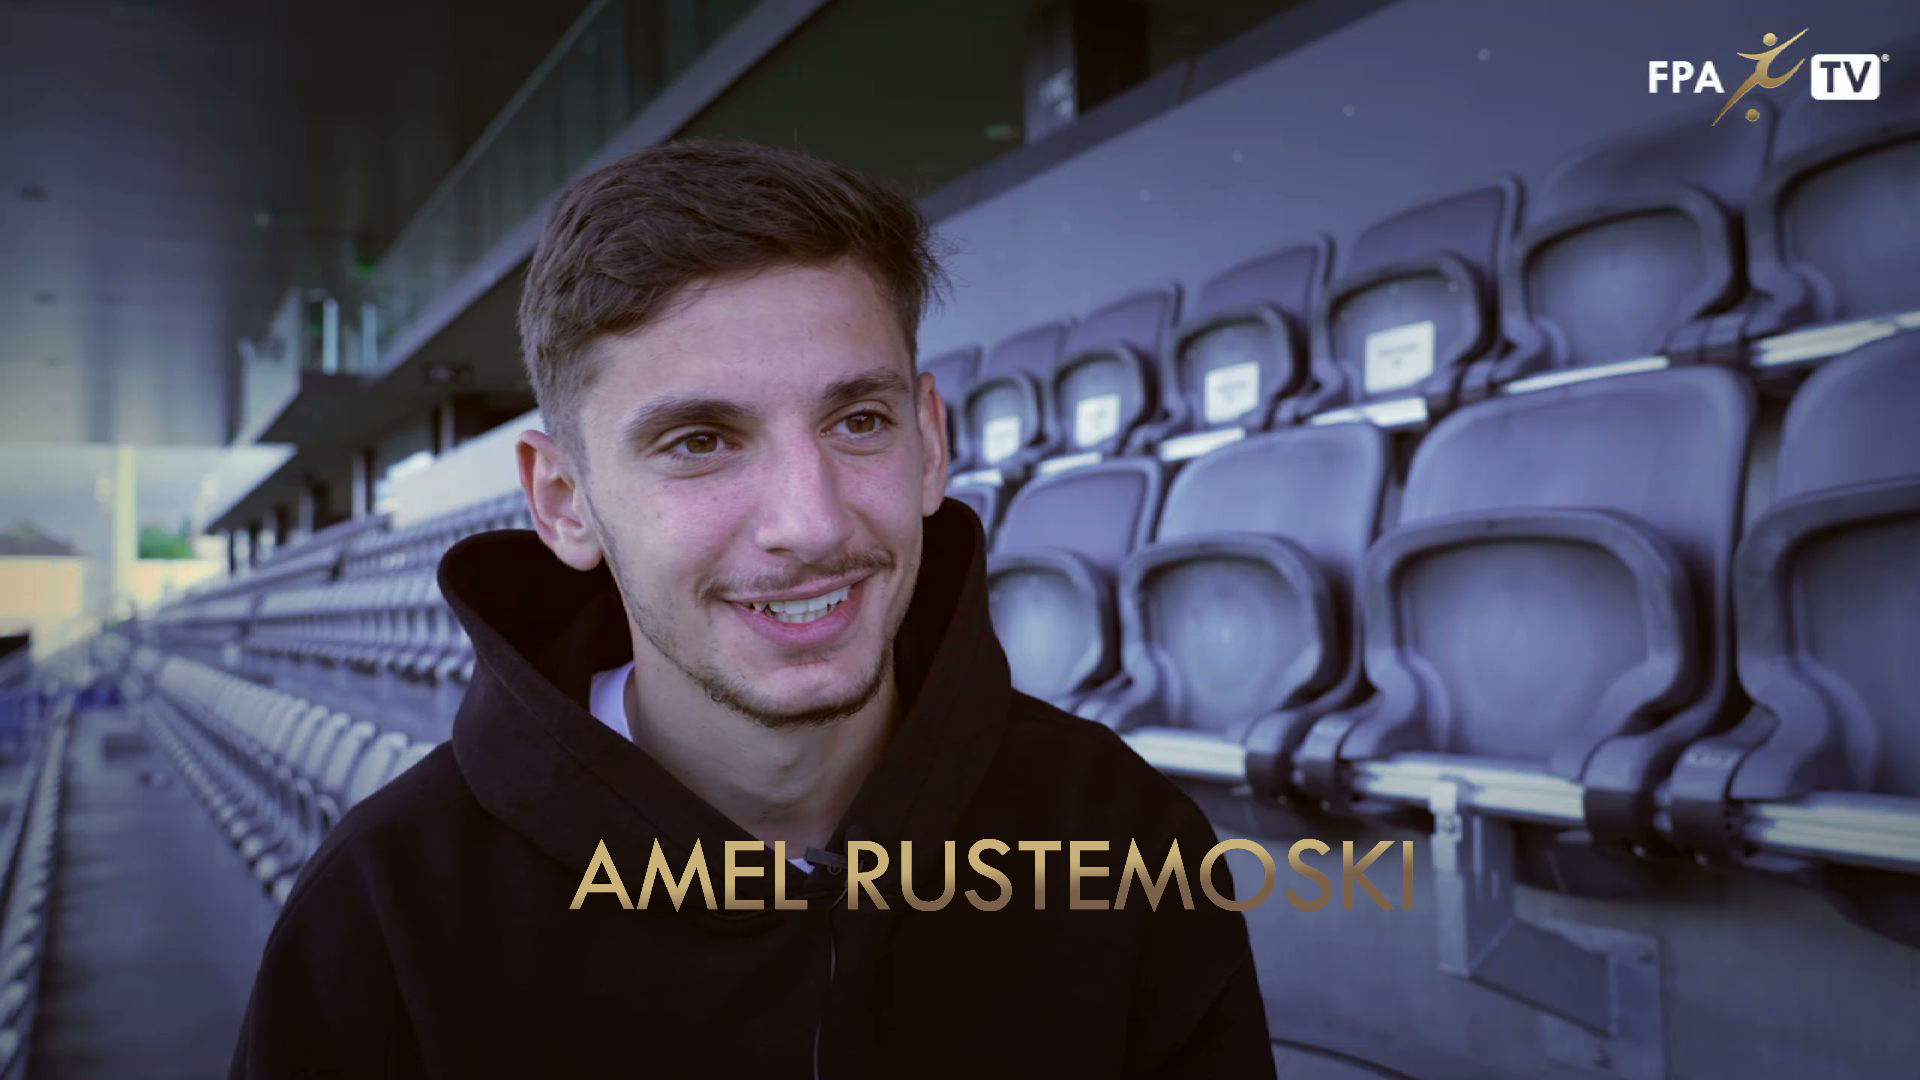 Amel Rustemoski is gearing up at FC Wil